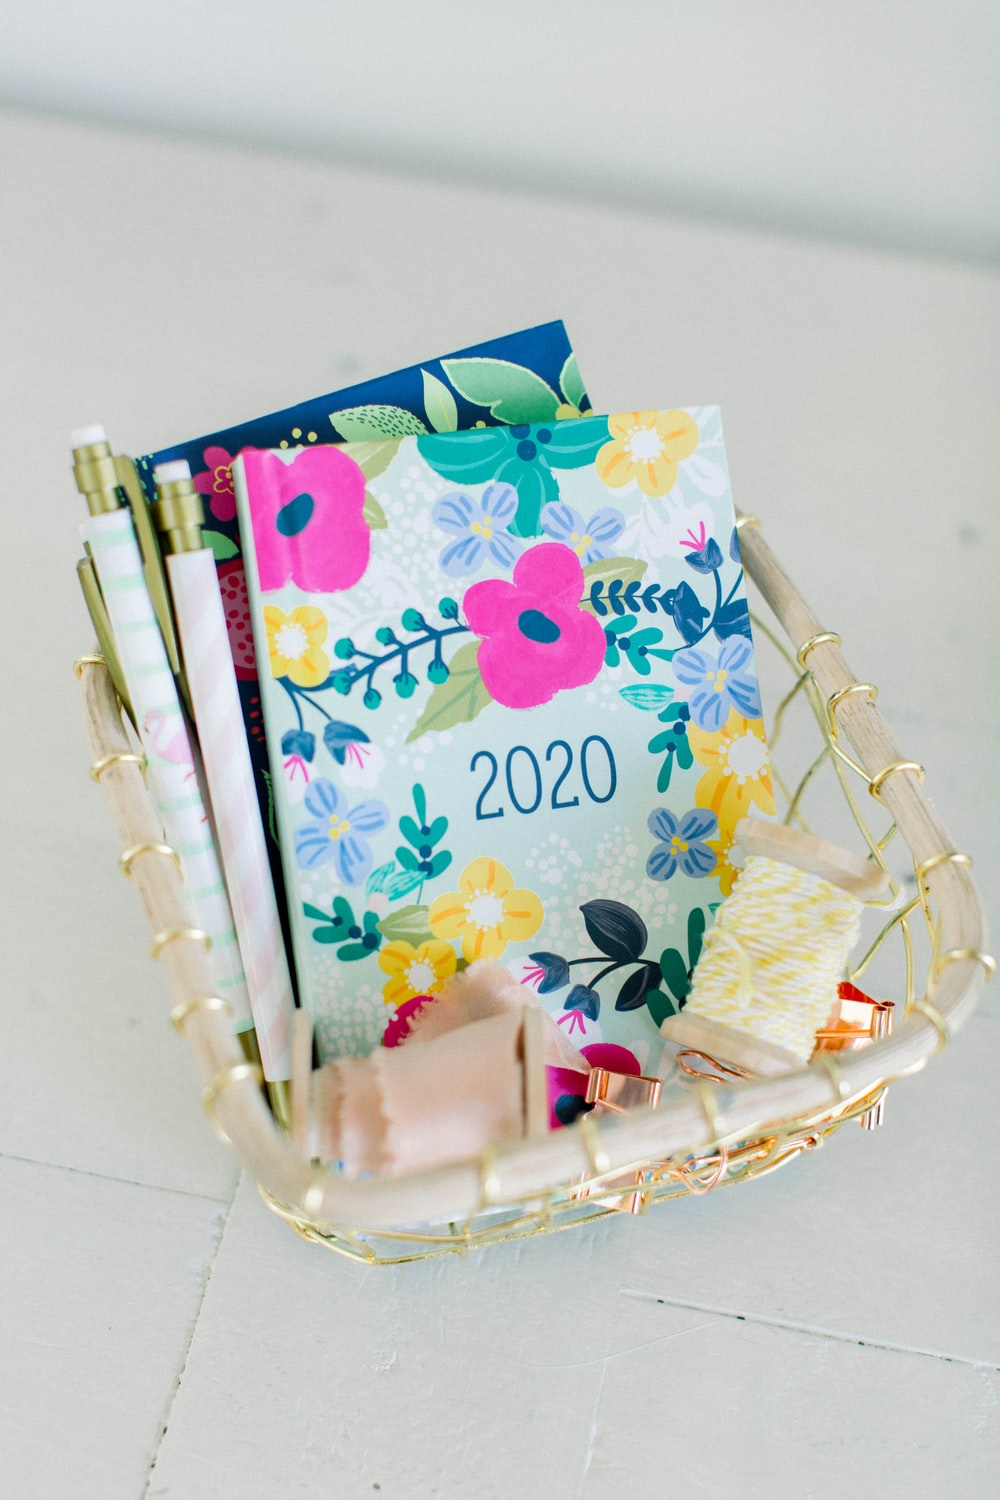 2020 books with basket